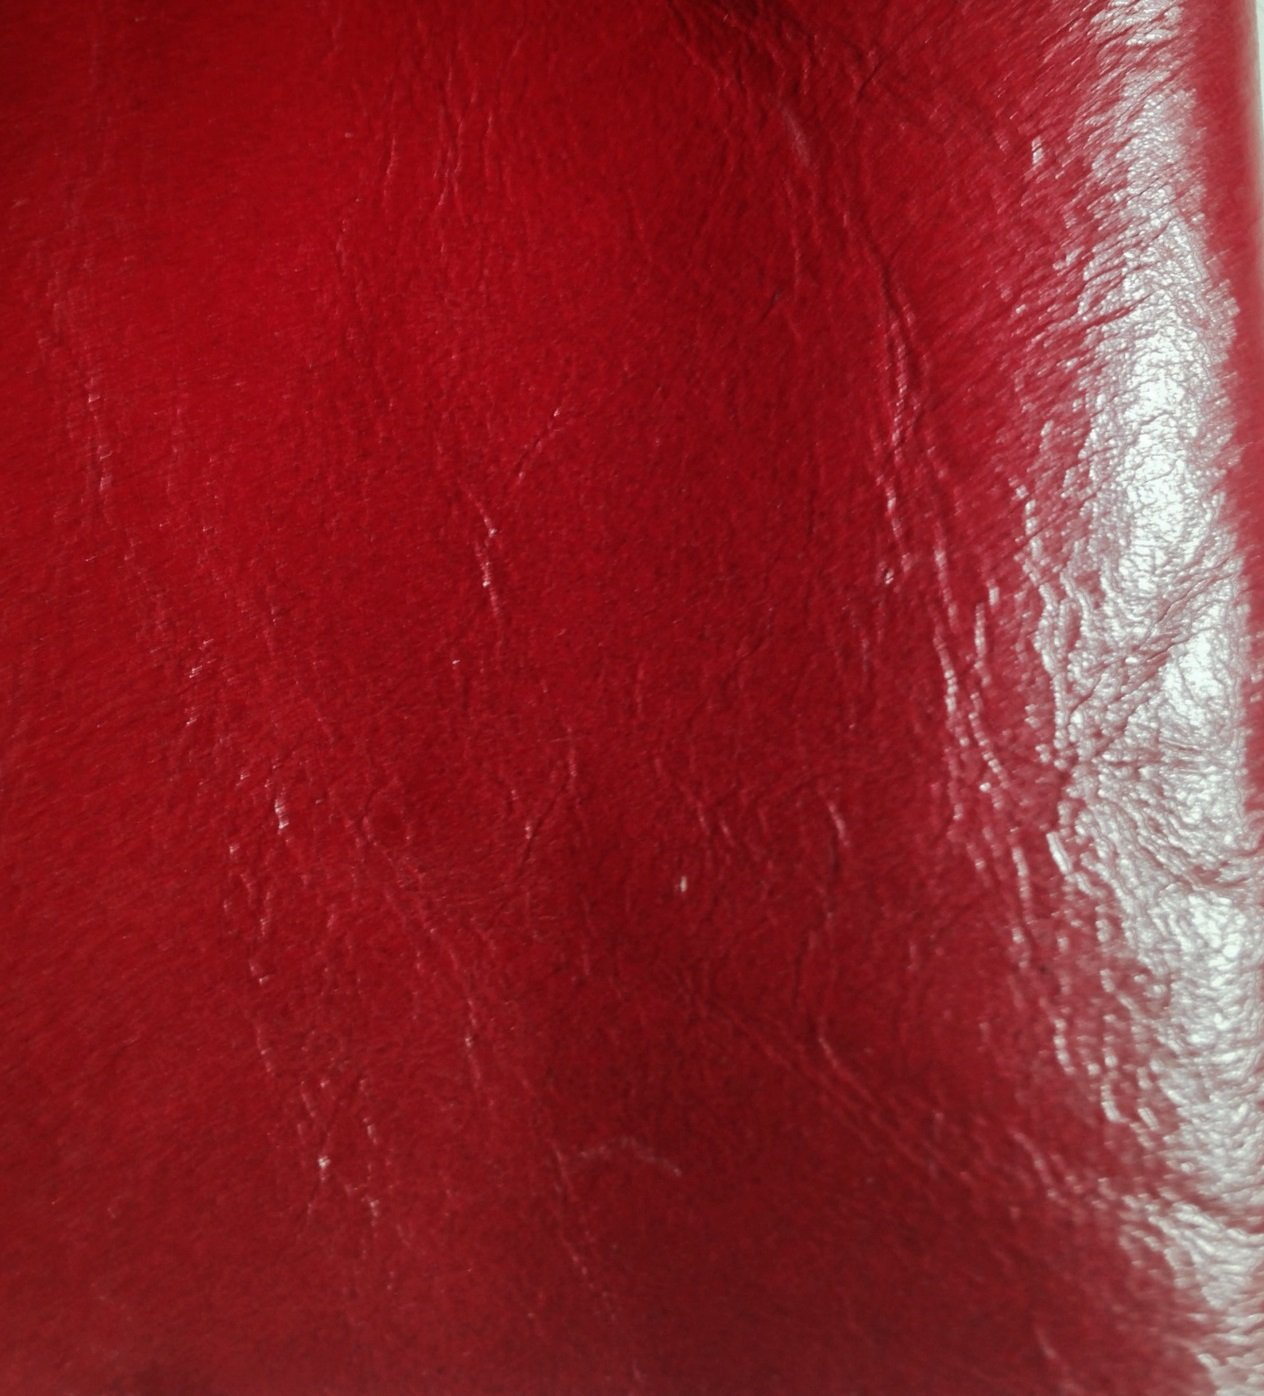 COW SKINS VARIOUS COLORS /& SIZES REED LEATHER HIDES 12 X 24 Inches 2 Square Foot, WHISKEY